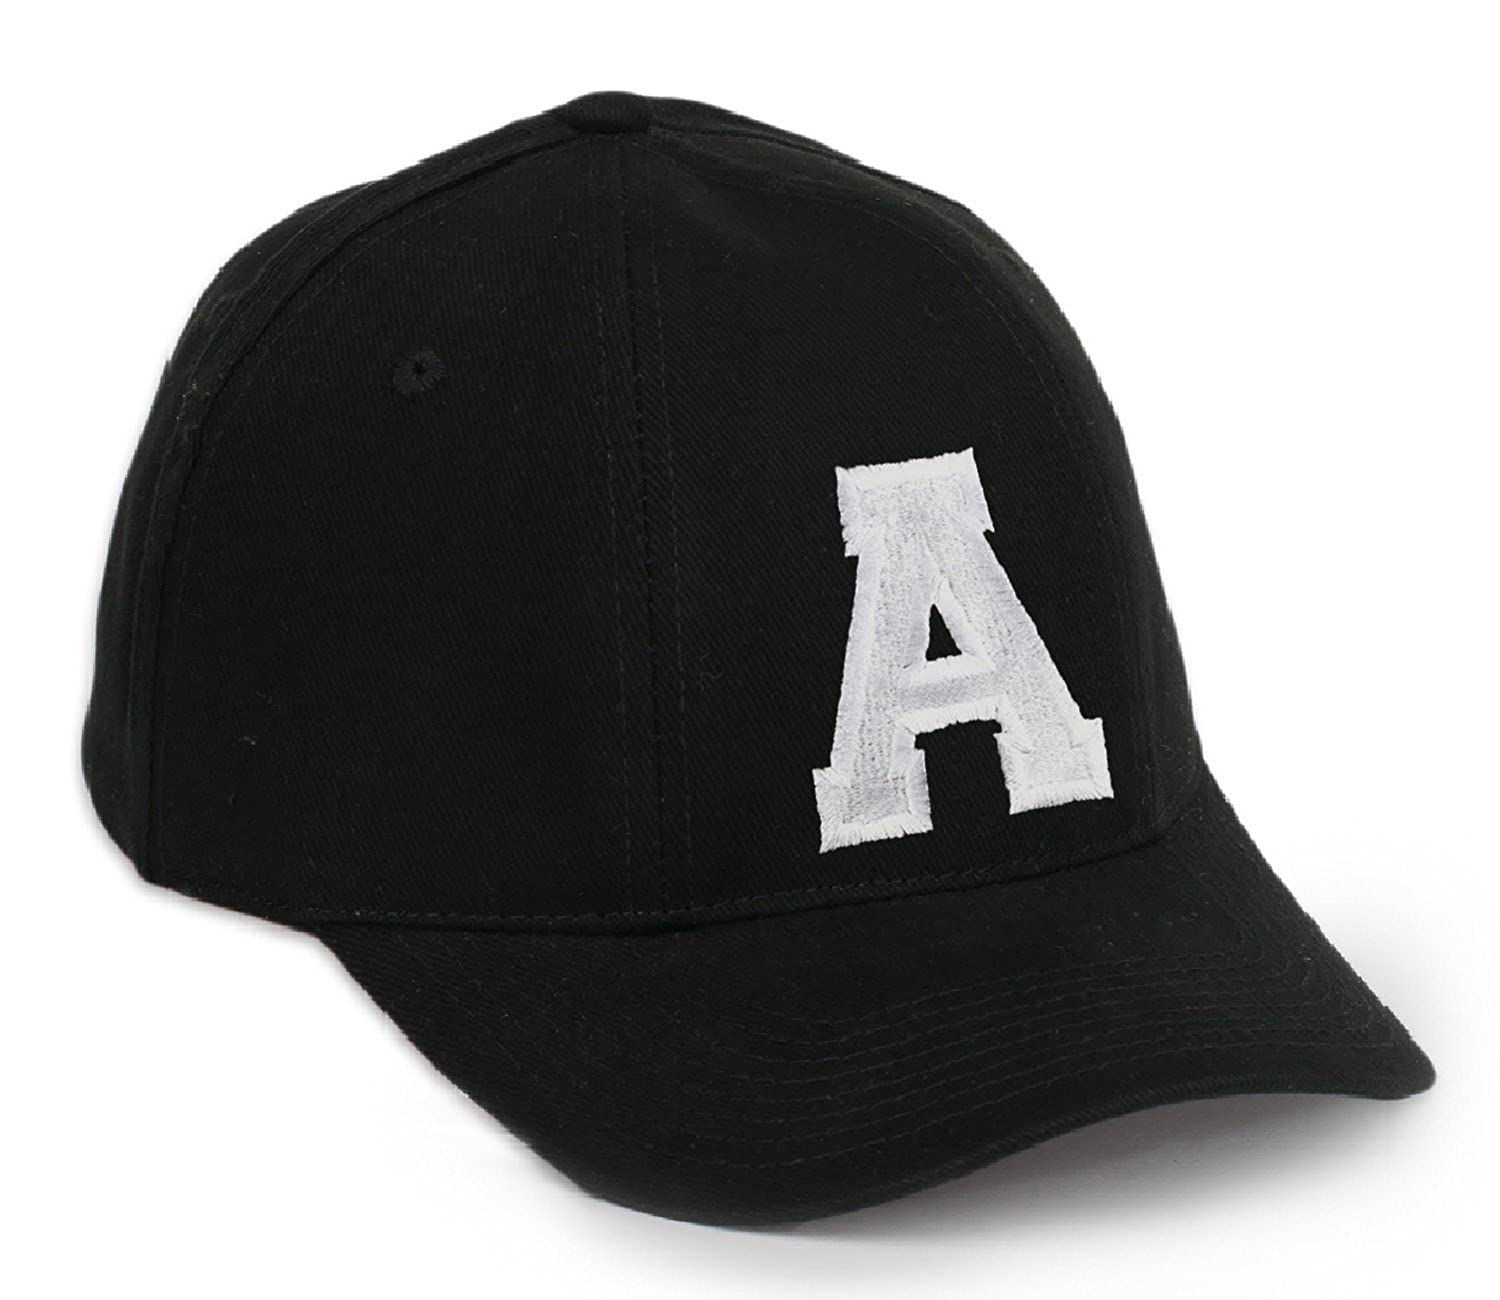 a452c52dbb622 Casual Baseball Cap A-Z Letter Alphabet Embroidered hat hats caps  adjustable strap Snap back (A) MFAZ Morefaz Ltd  Amazon.co.uk  Clothing